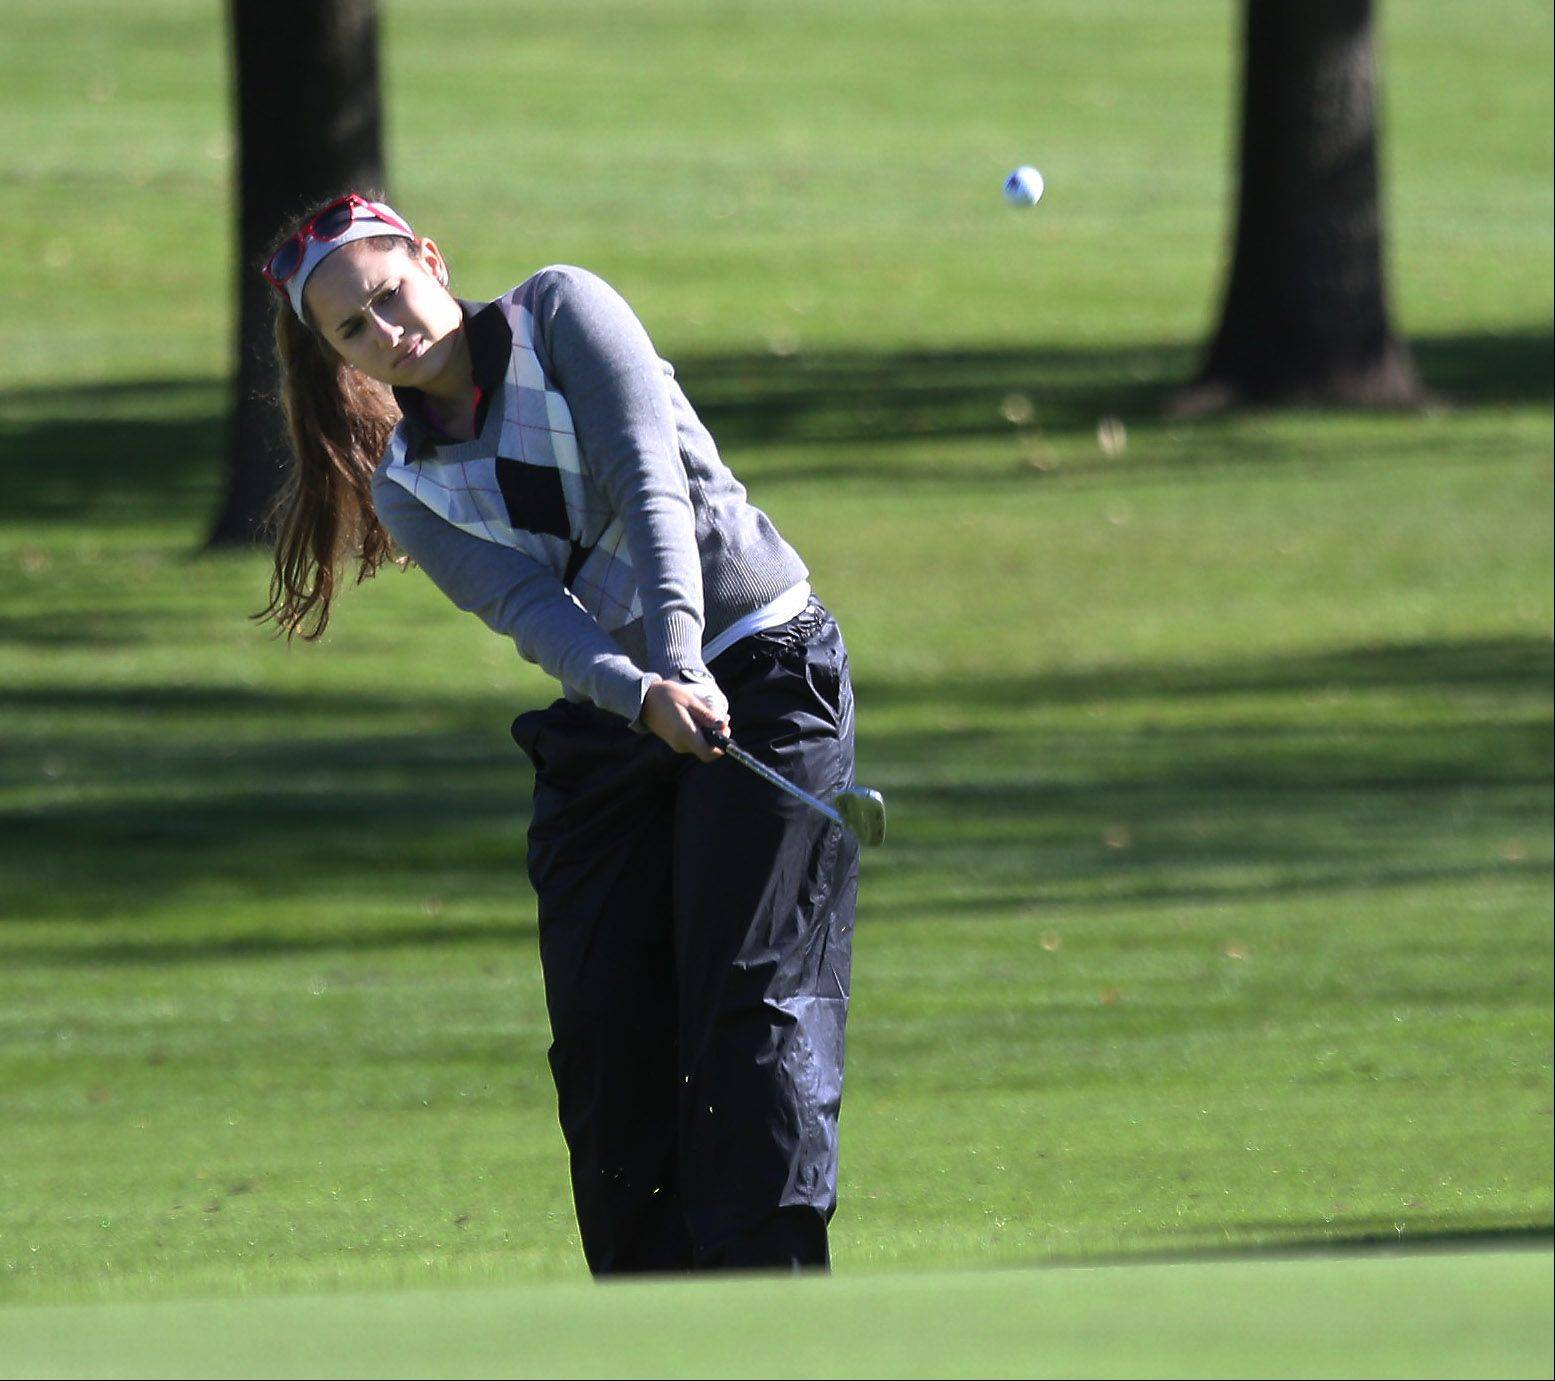 Mundelein golfer Cristina Loverde hits a shot onto the green on the first hole during the Class AA Carmel girls golf regional Wednesday at Bonnie Brook.